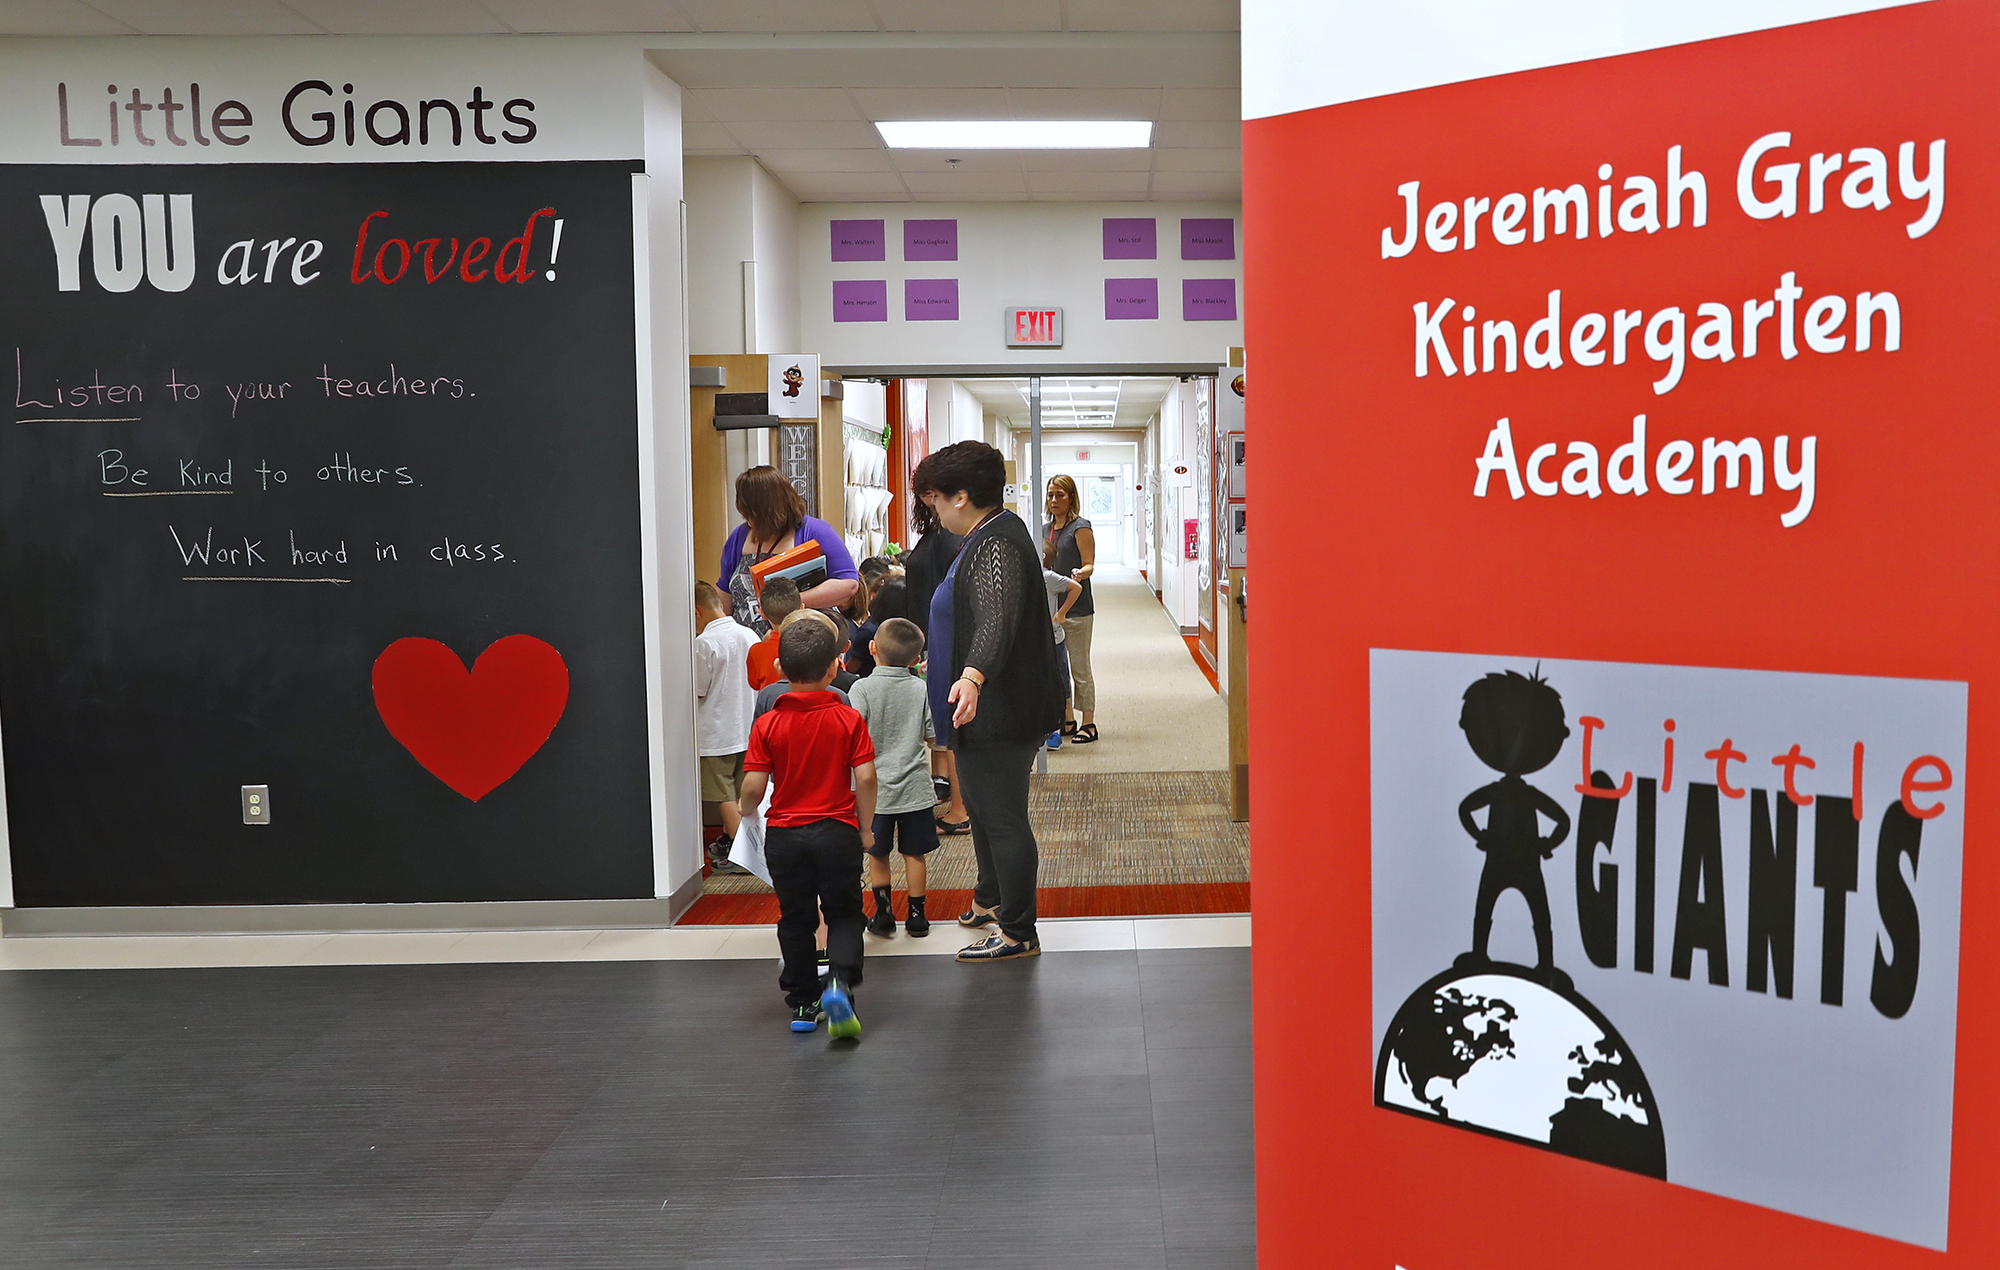 Positive messages greet students at Jeremiah Gray Kindergarten Academy, Friday, August 2, 2019.